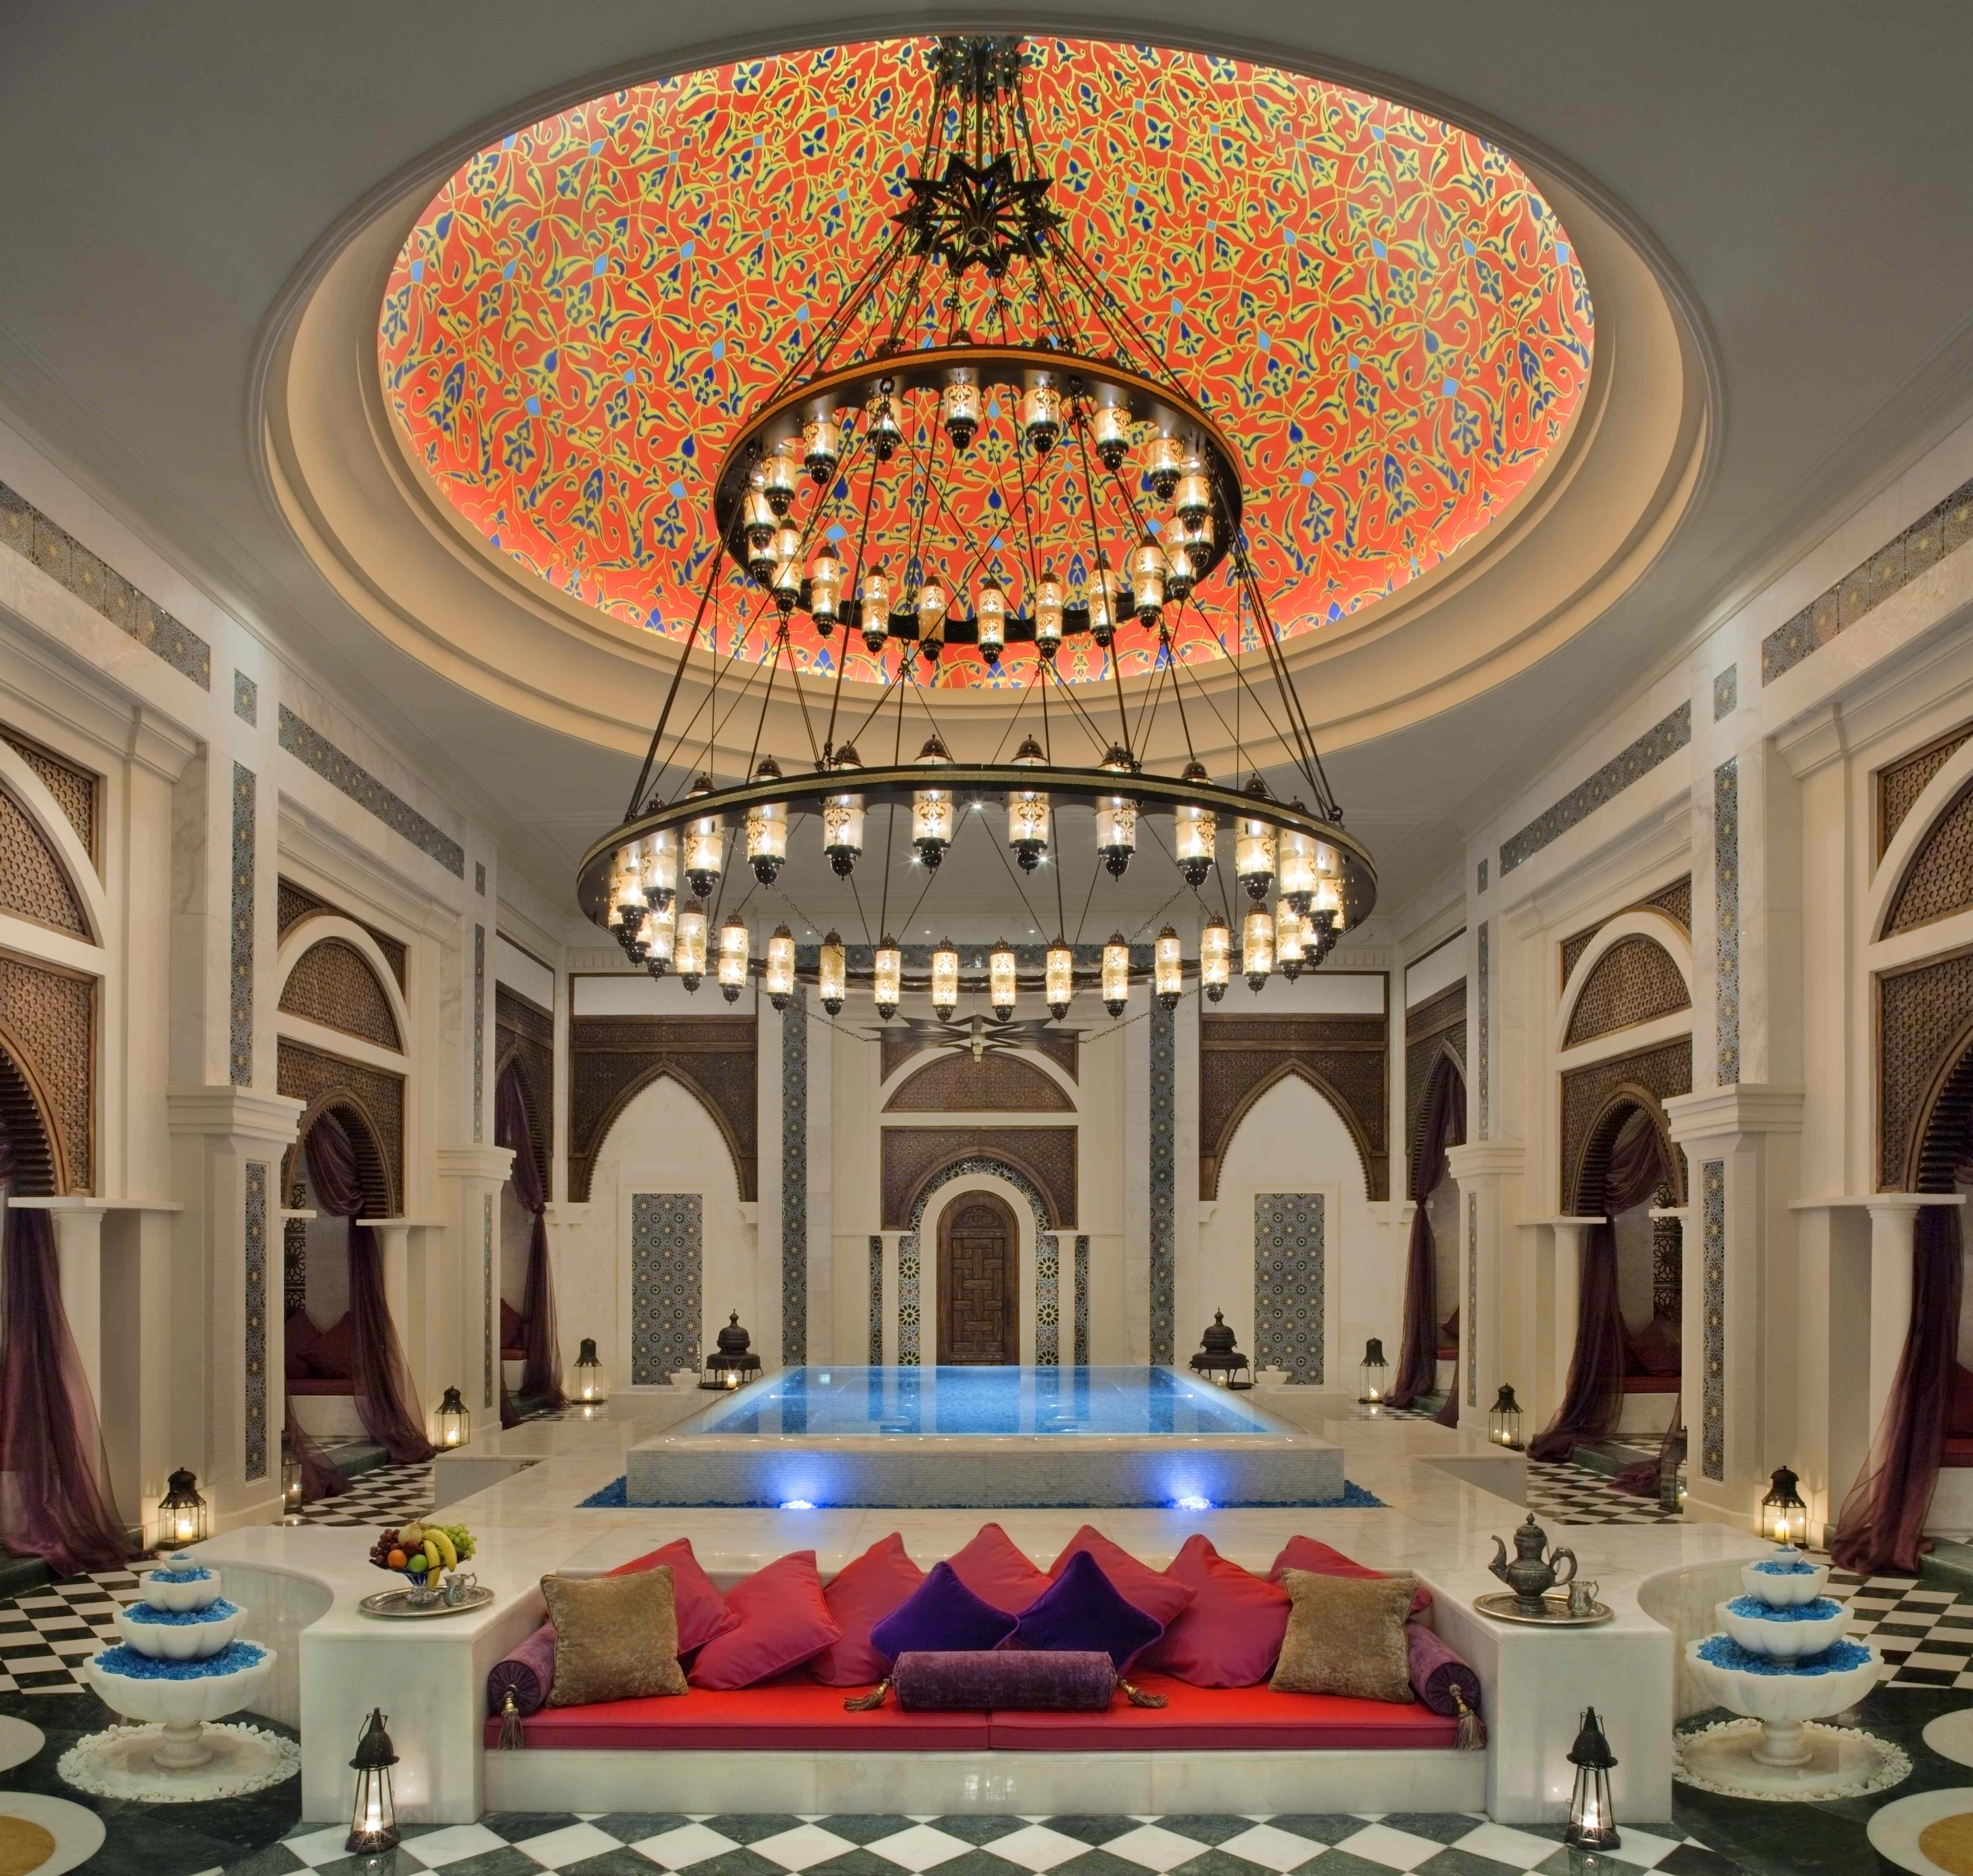 Turkish luxuries talise ottoman spa haute living for Hotel world design